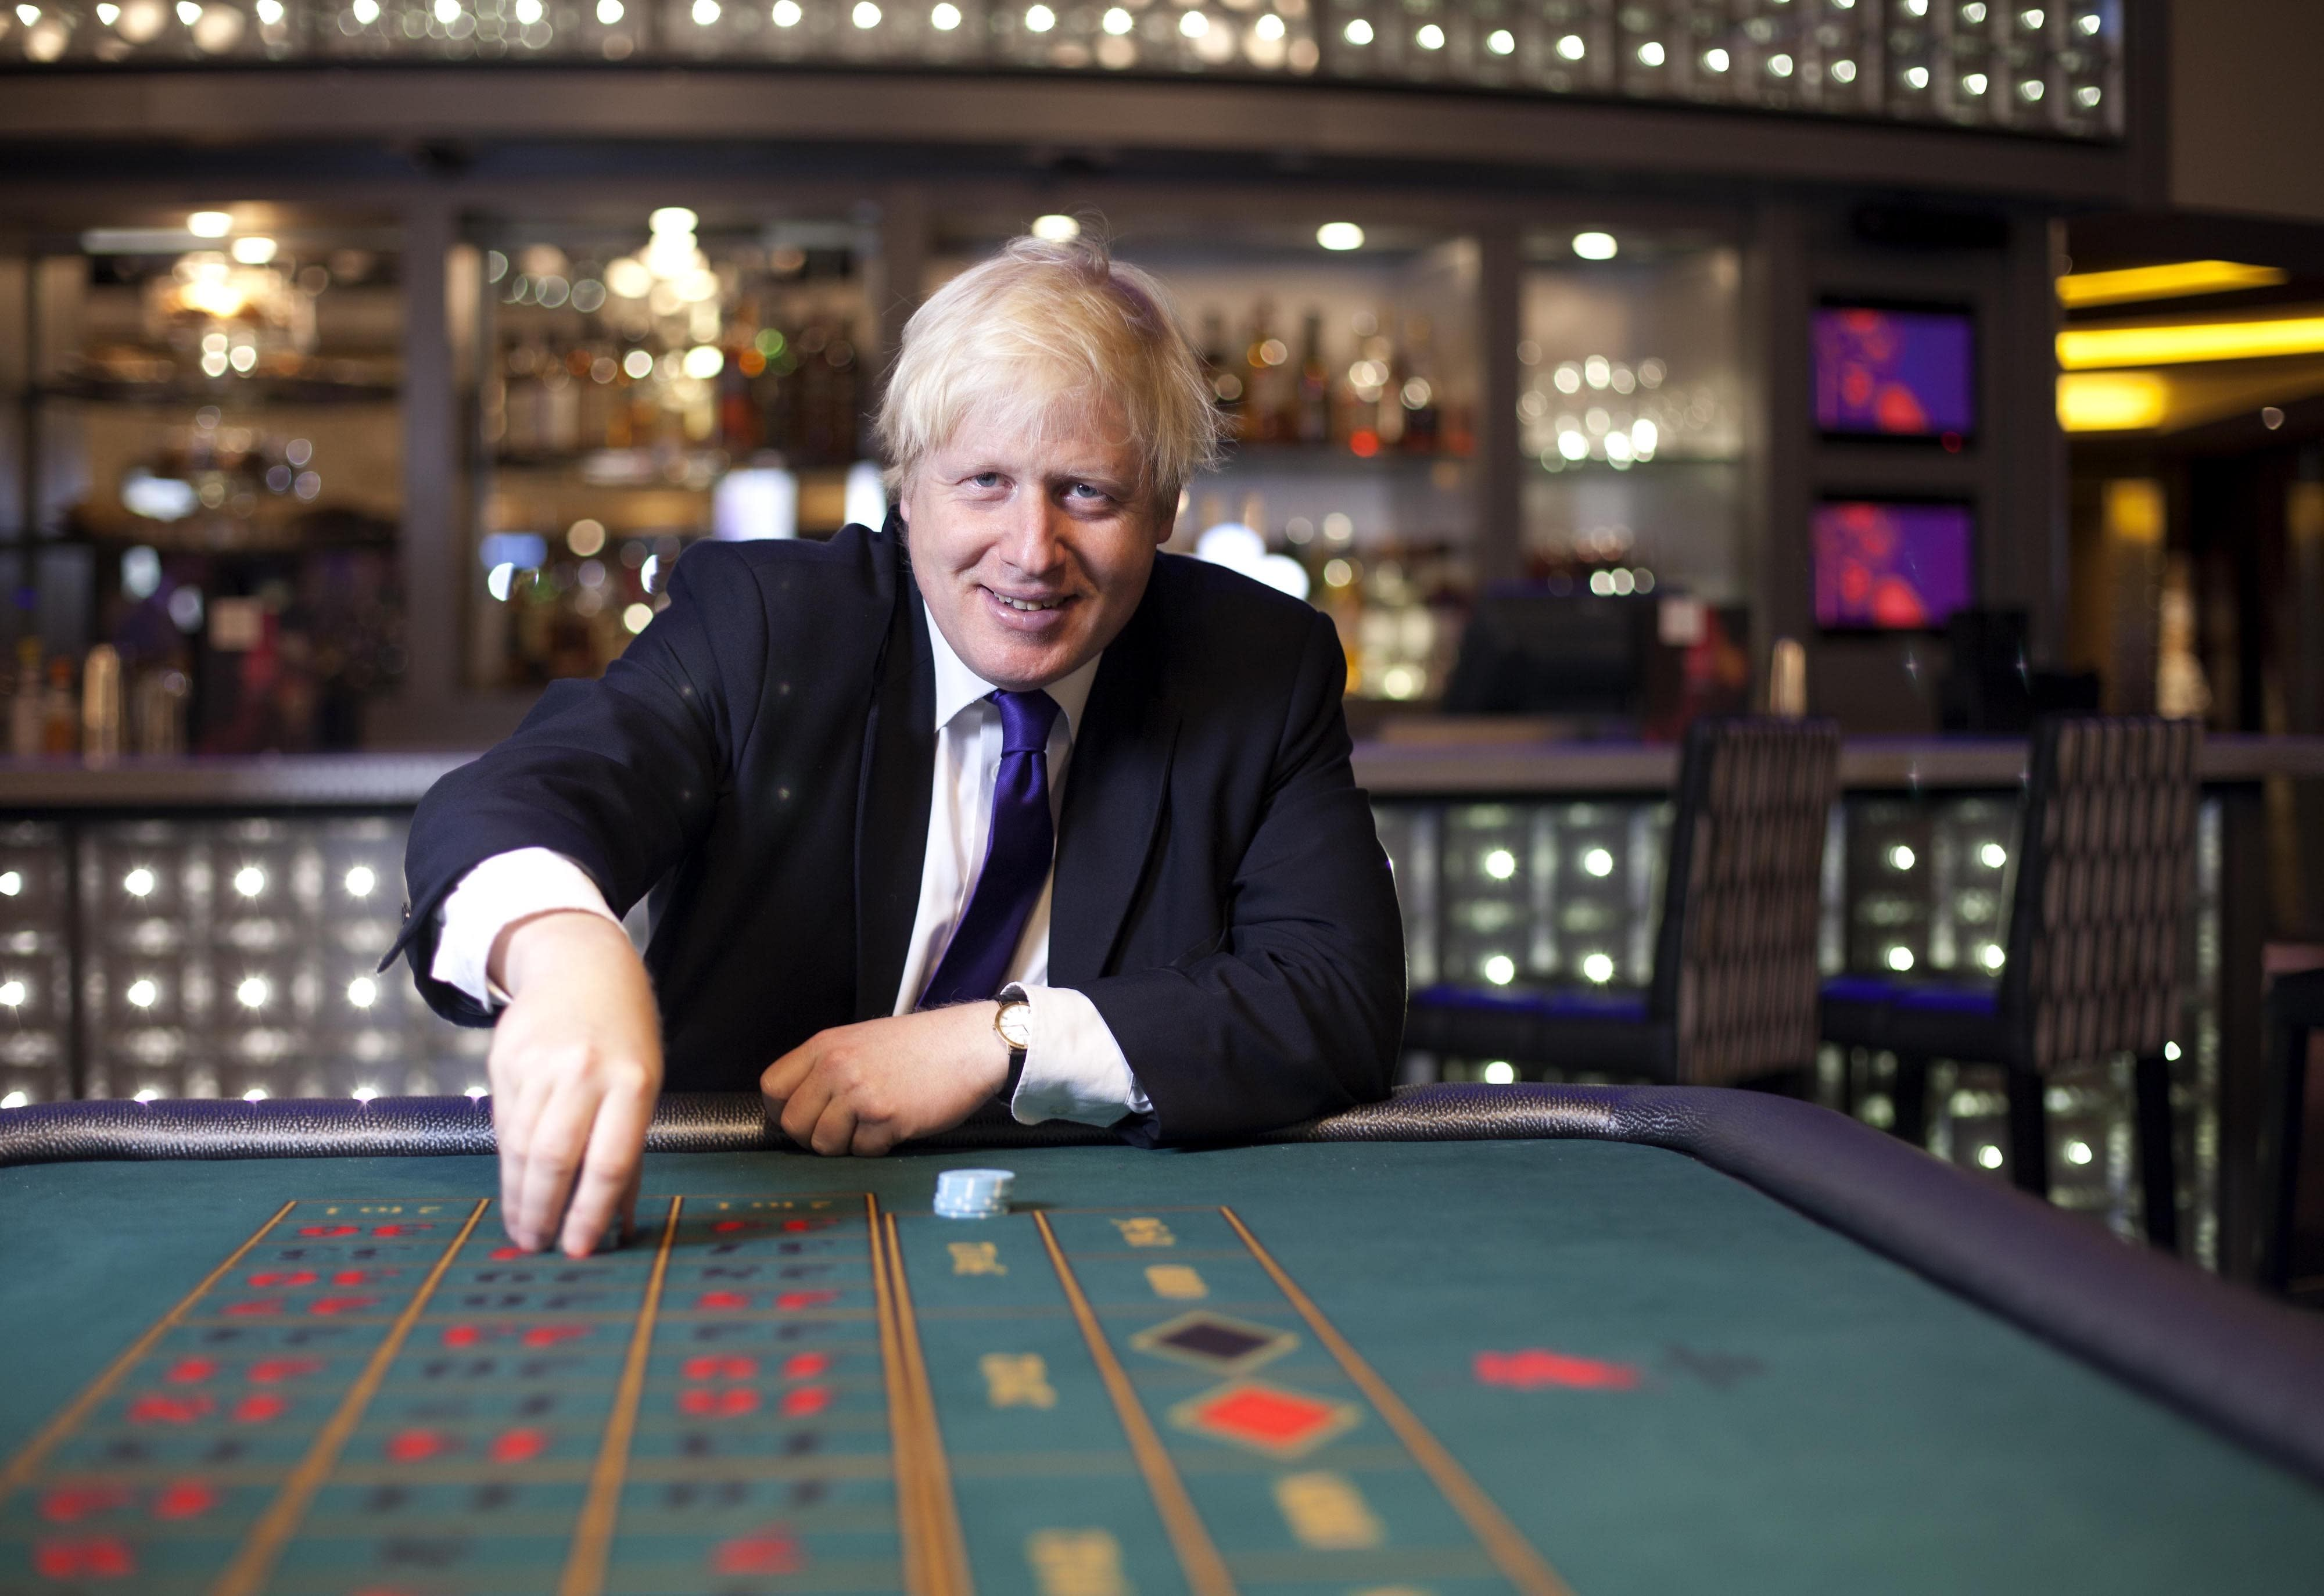 Boris Johnson's Brexit plan could 'gamble away' the UK's reputation for business